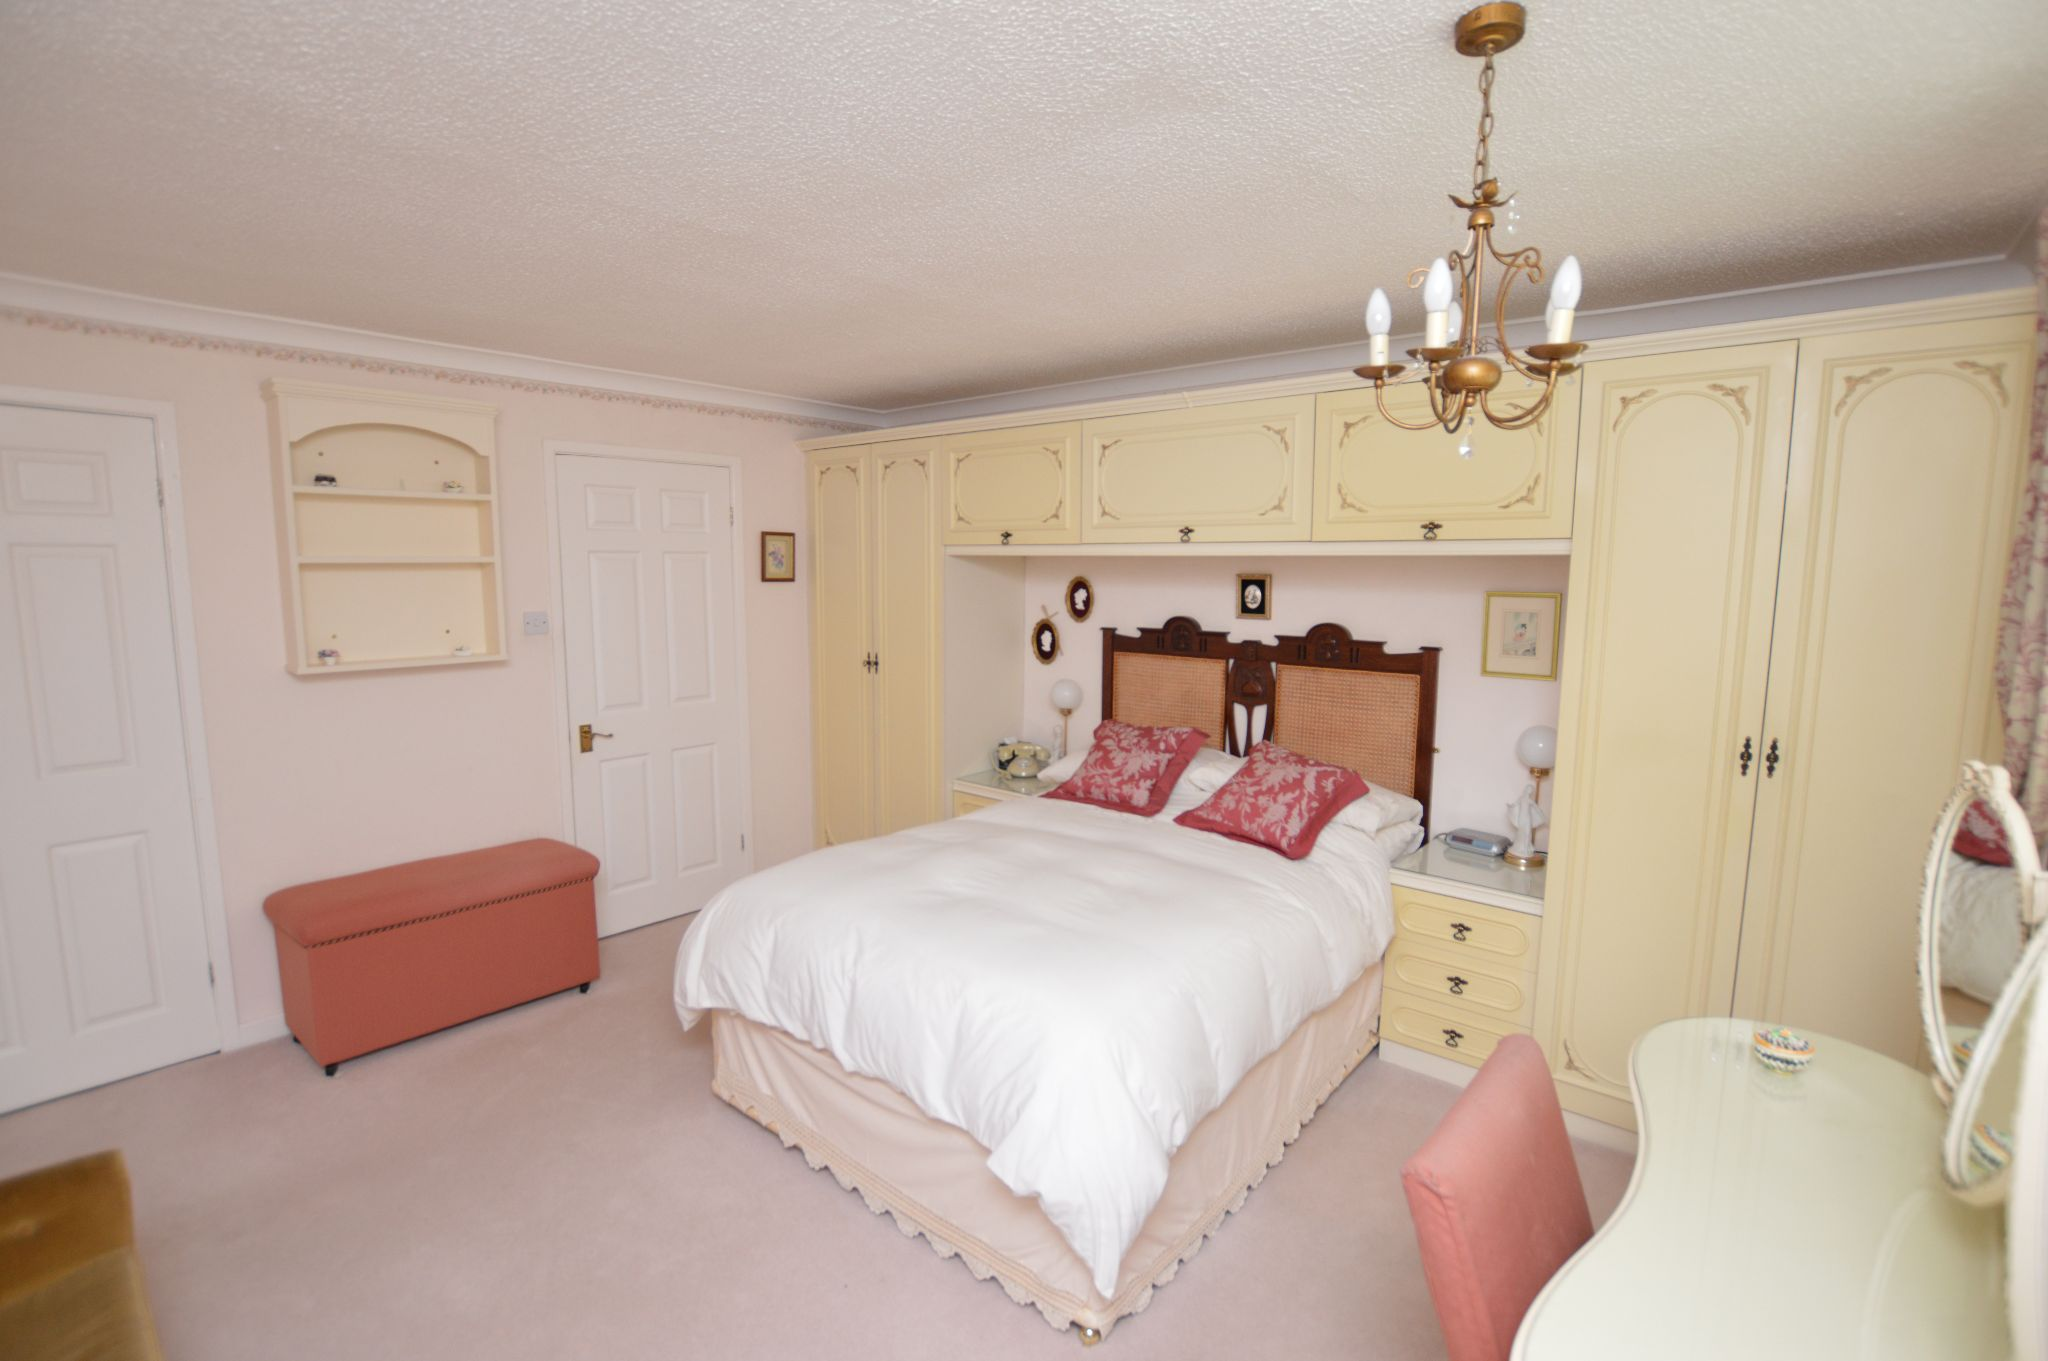 4 bedroom detached house For Sale in Abergele - Bedroom 1 View 2